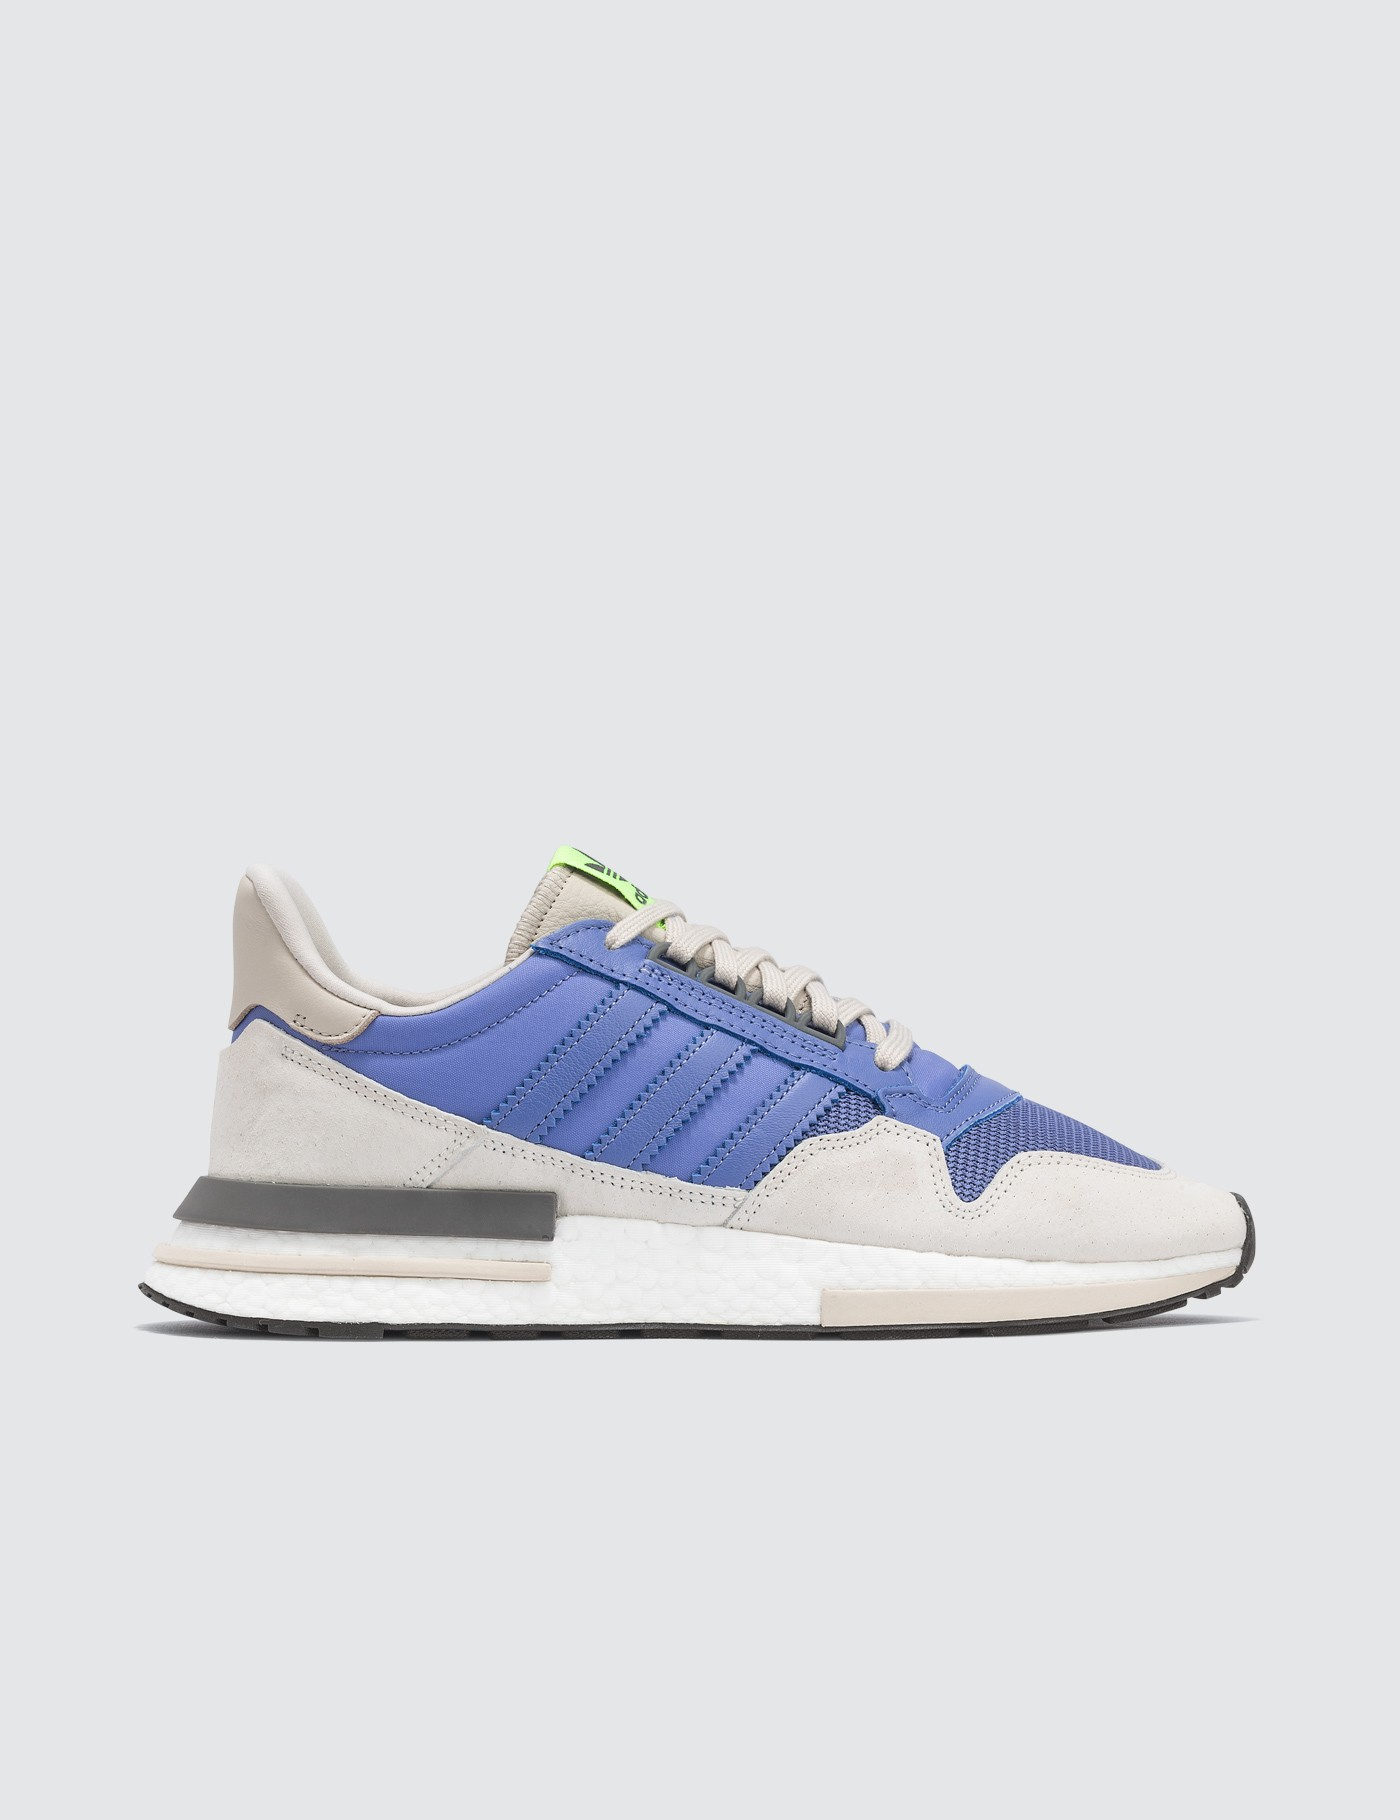 low priced ebfd9 93347 ZX 500 RM Sneakers, Adidas Originals